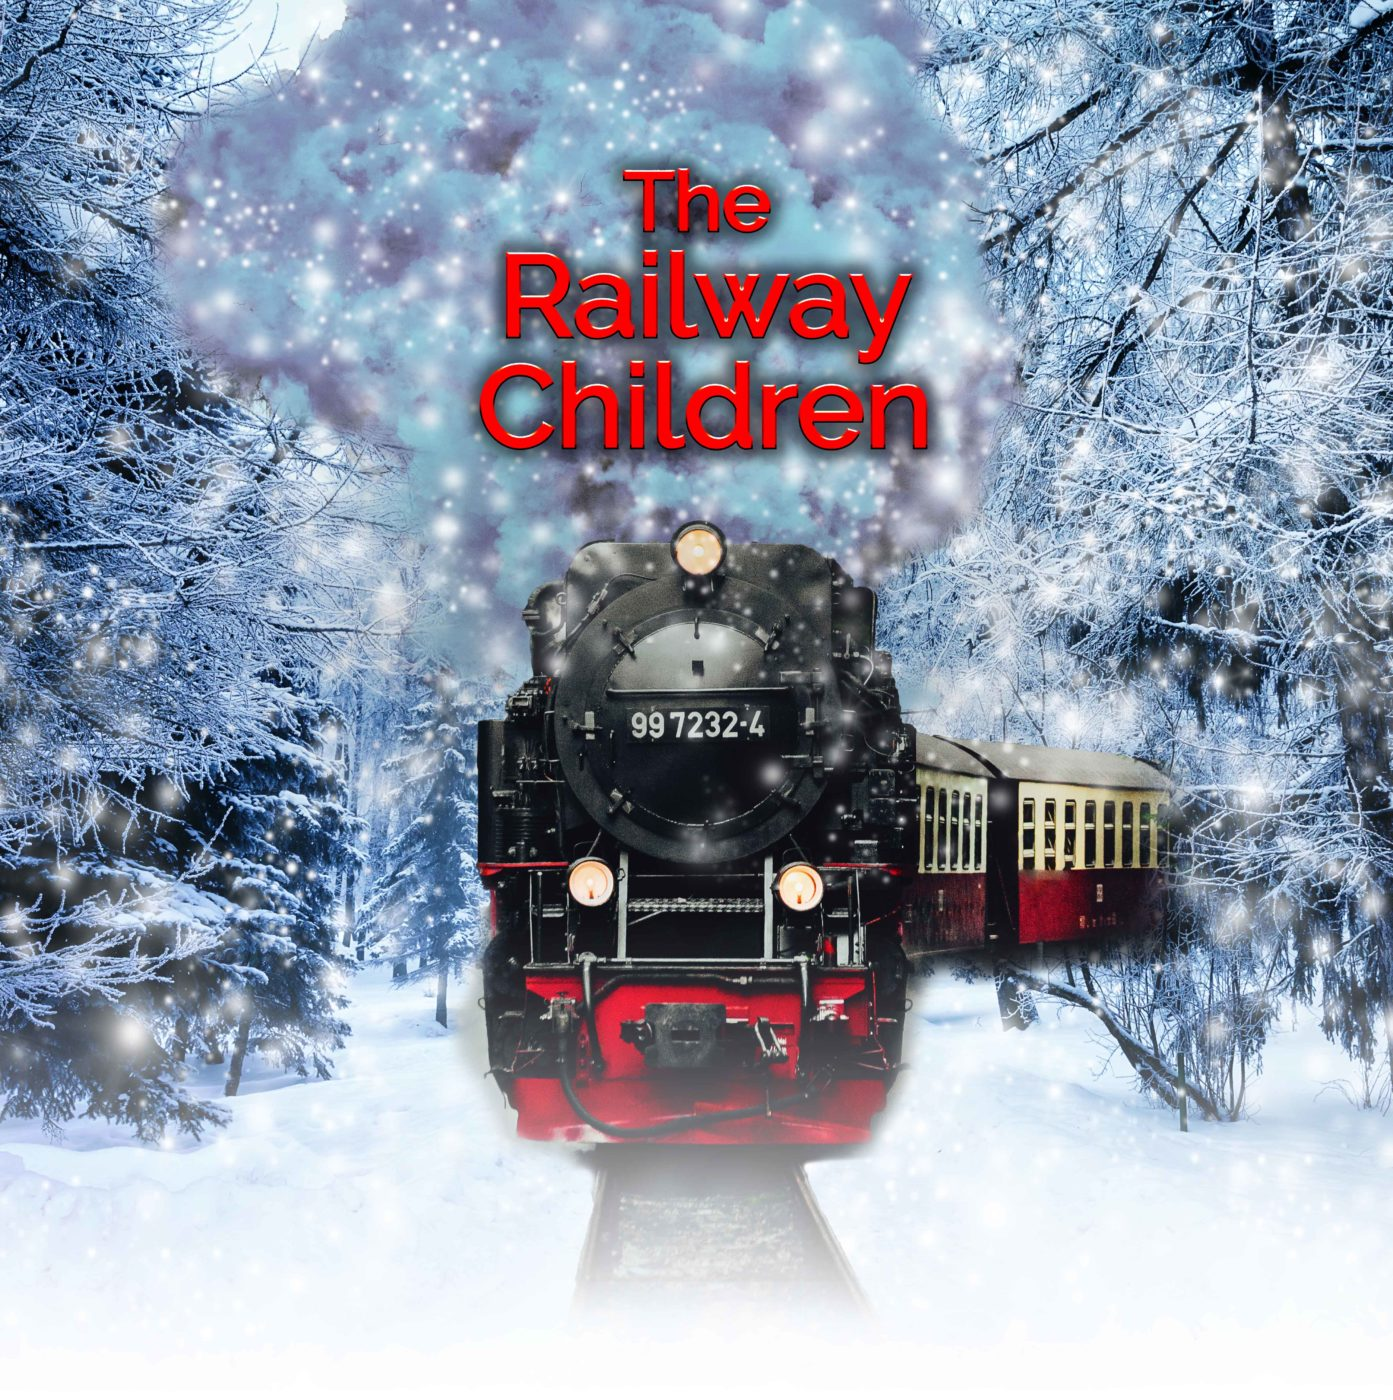 A classic black, red and white steam train heads through a winter forest that sparkles with snowflakes. Above the train's engine are the words, The Railway Children.